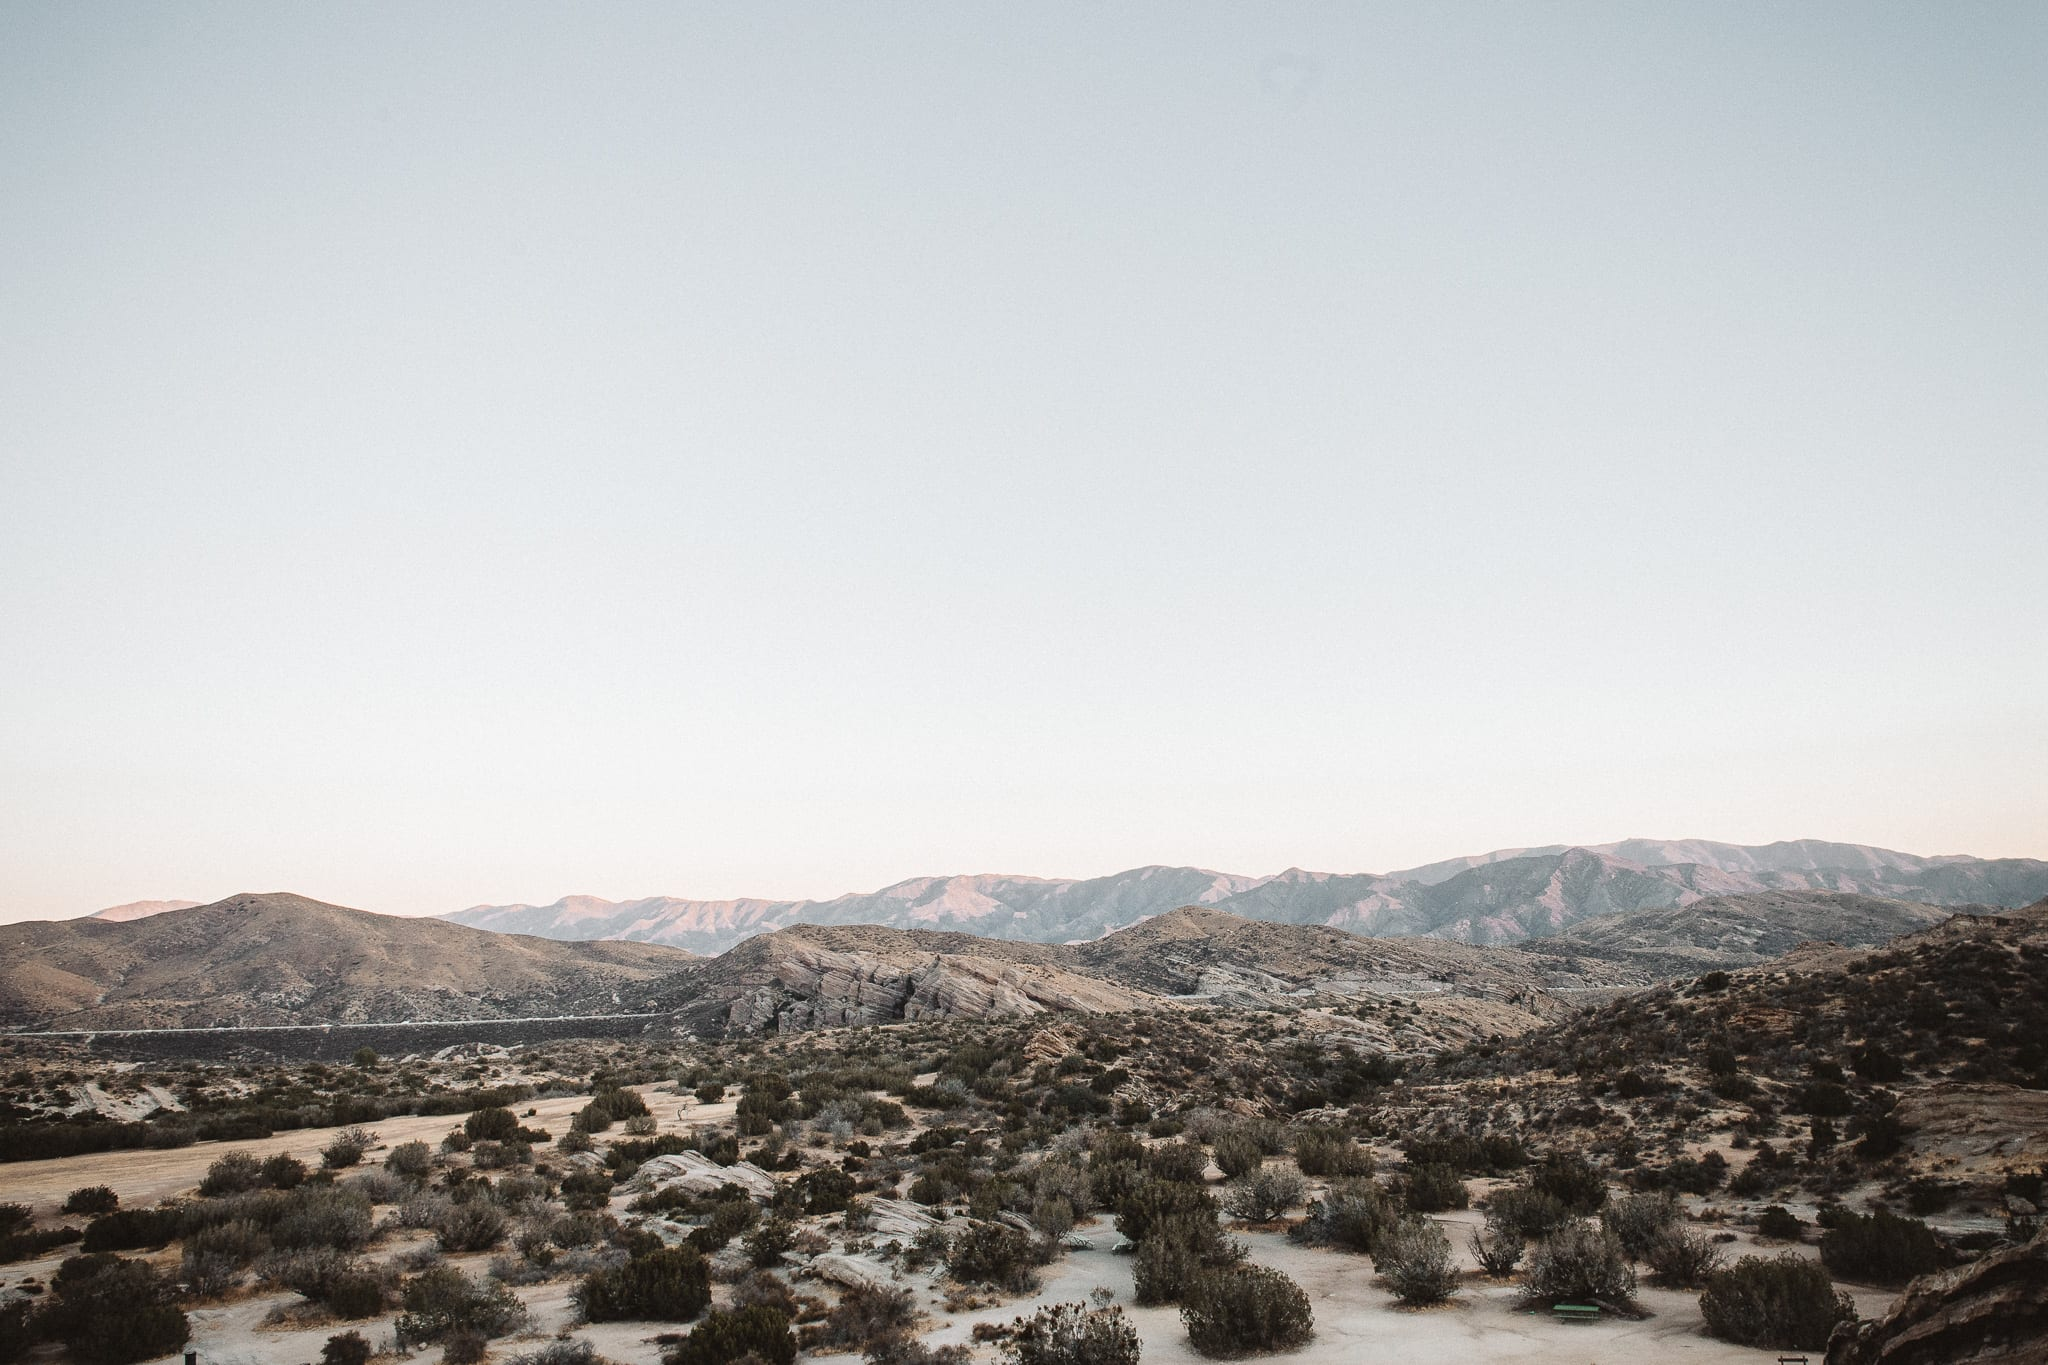 vasquez-rocks-la-california-lifestyle-wedding-photographer-19